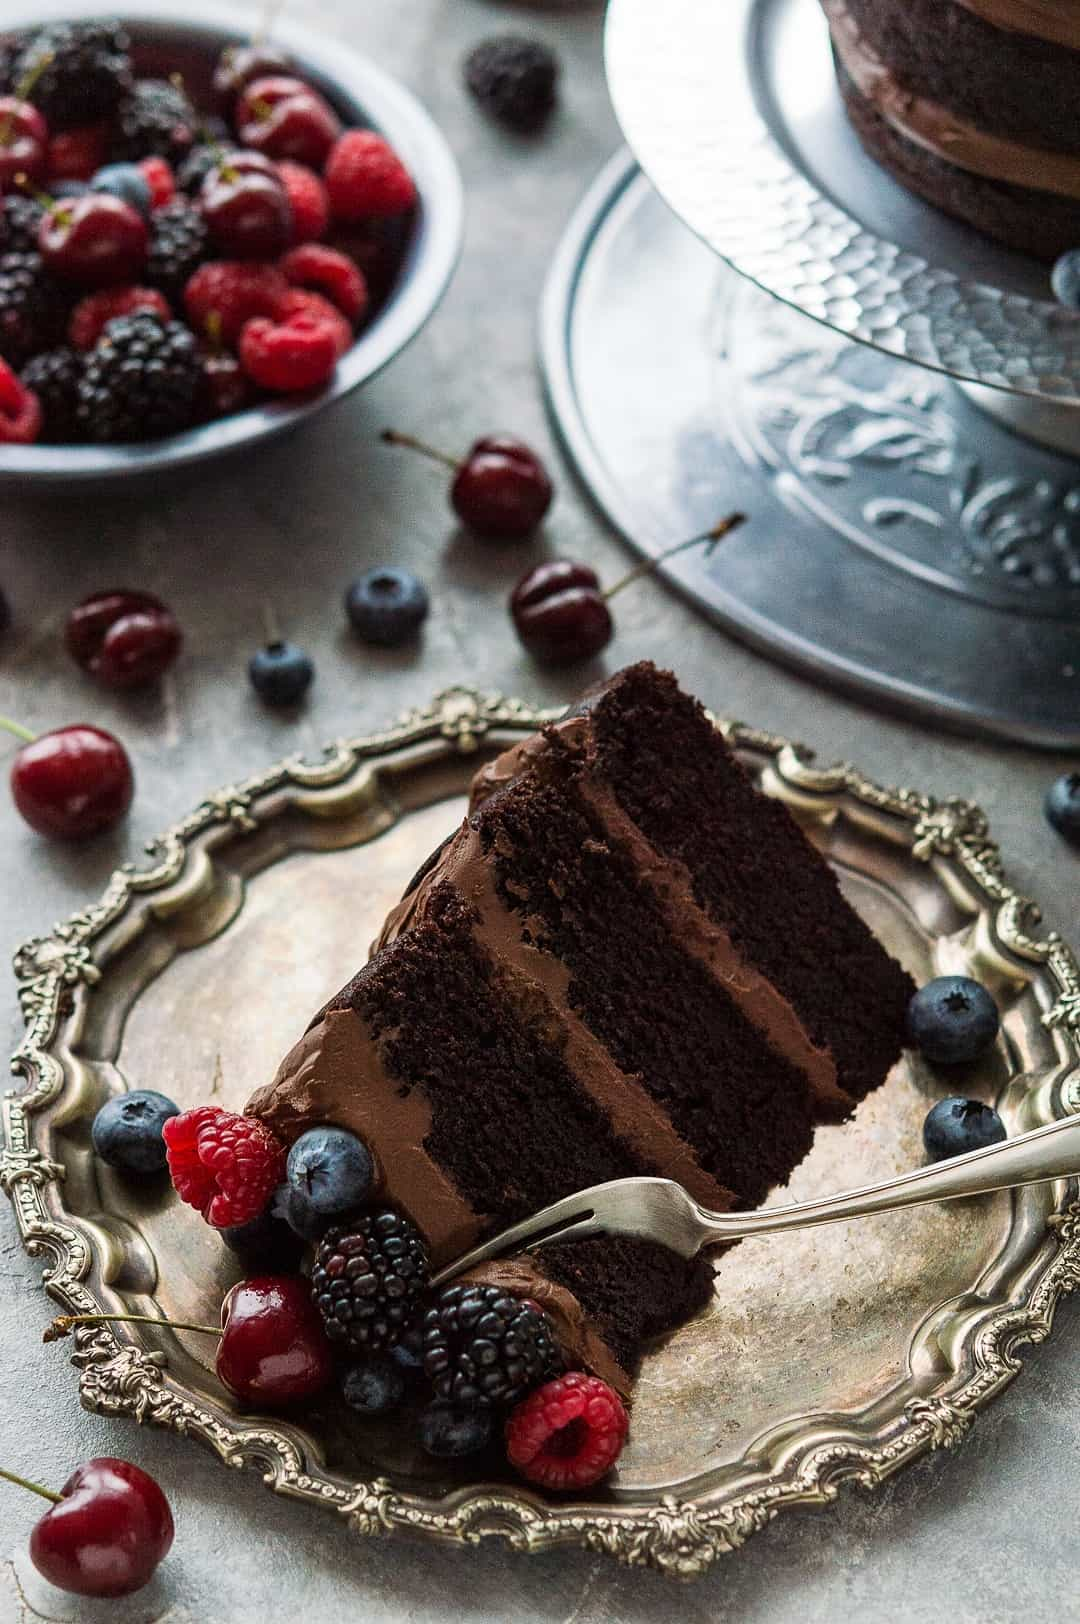 Slice of easy vegan chocolate cake with vegan ganache on a pewter platter with fresh berries.